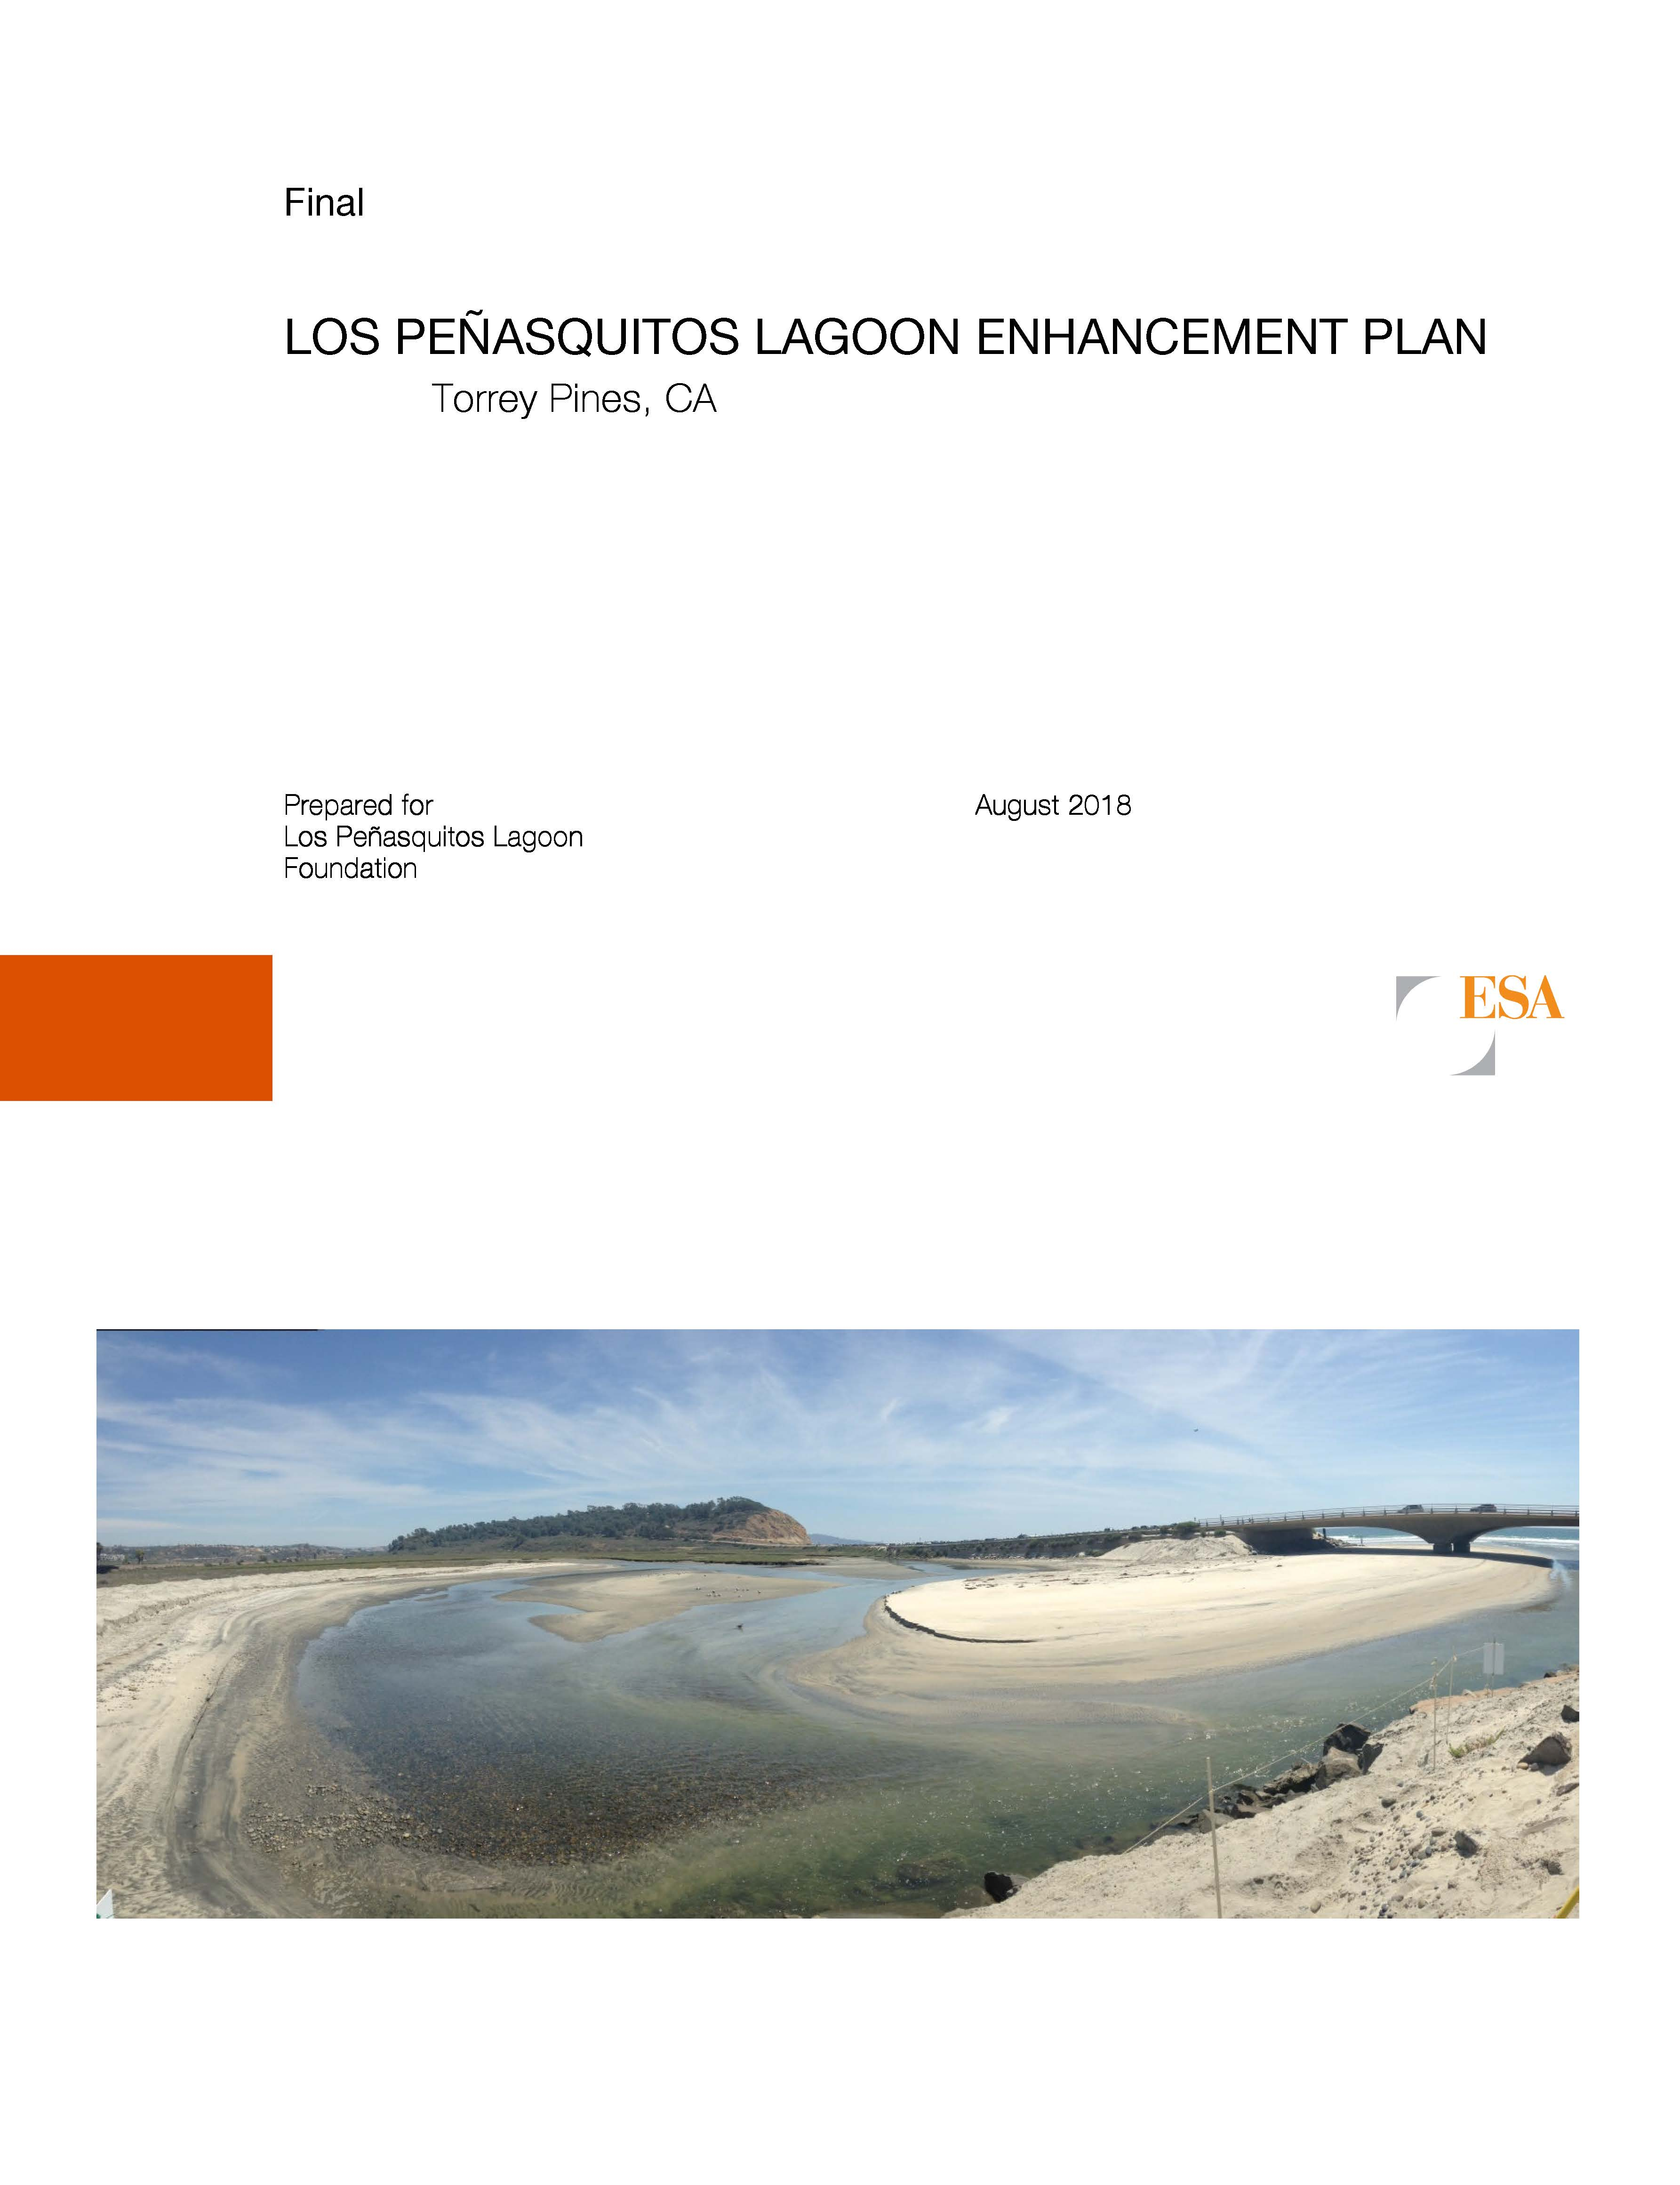 Pages from ESA FINAL Los Penasquitos Lagoon Enhancement Plan